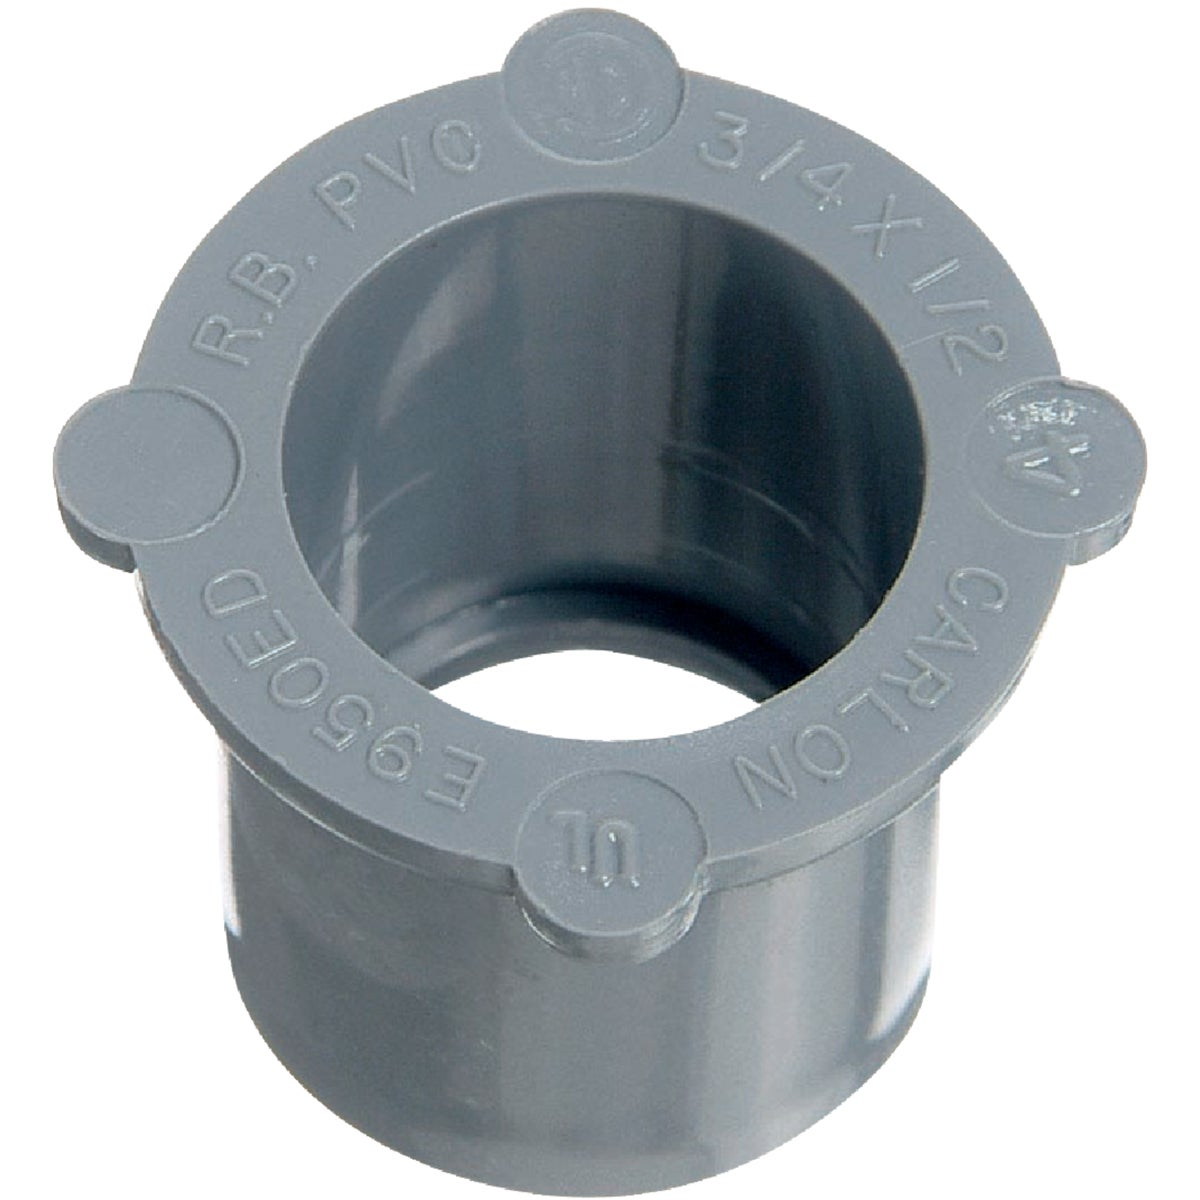 1-1/4X1 REDUCER - E950GF-CTN by Thomas & Betts